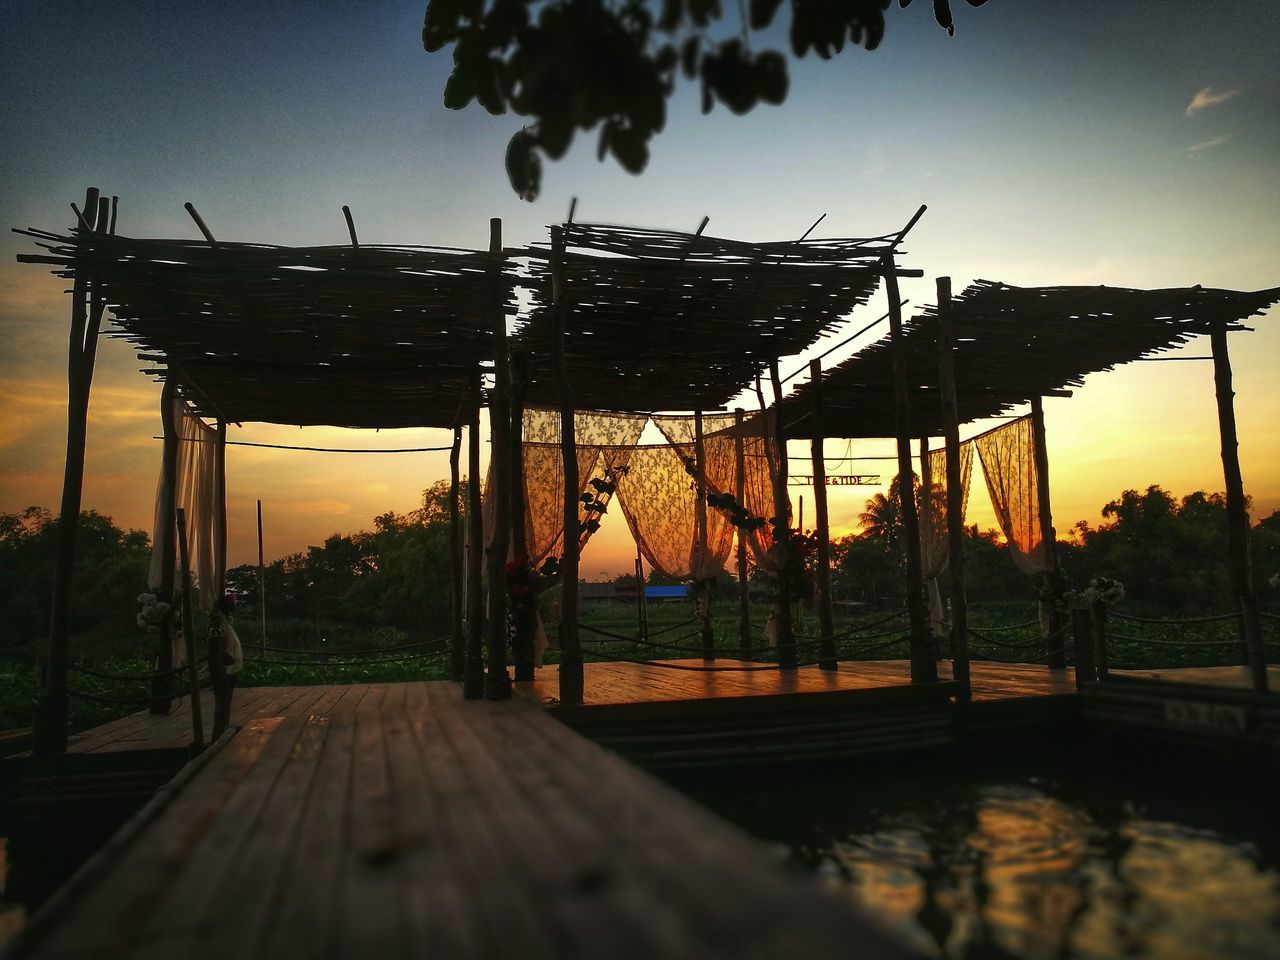 sunset, sky, outdoors, built structure, tree, roof, nature, no people, architecture, water, day